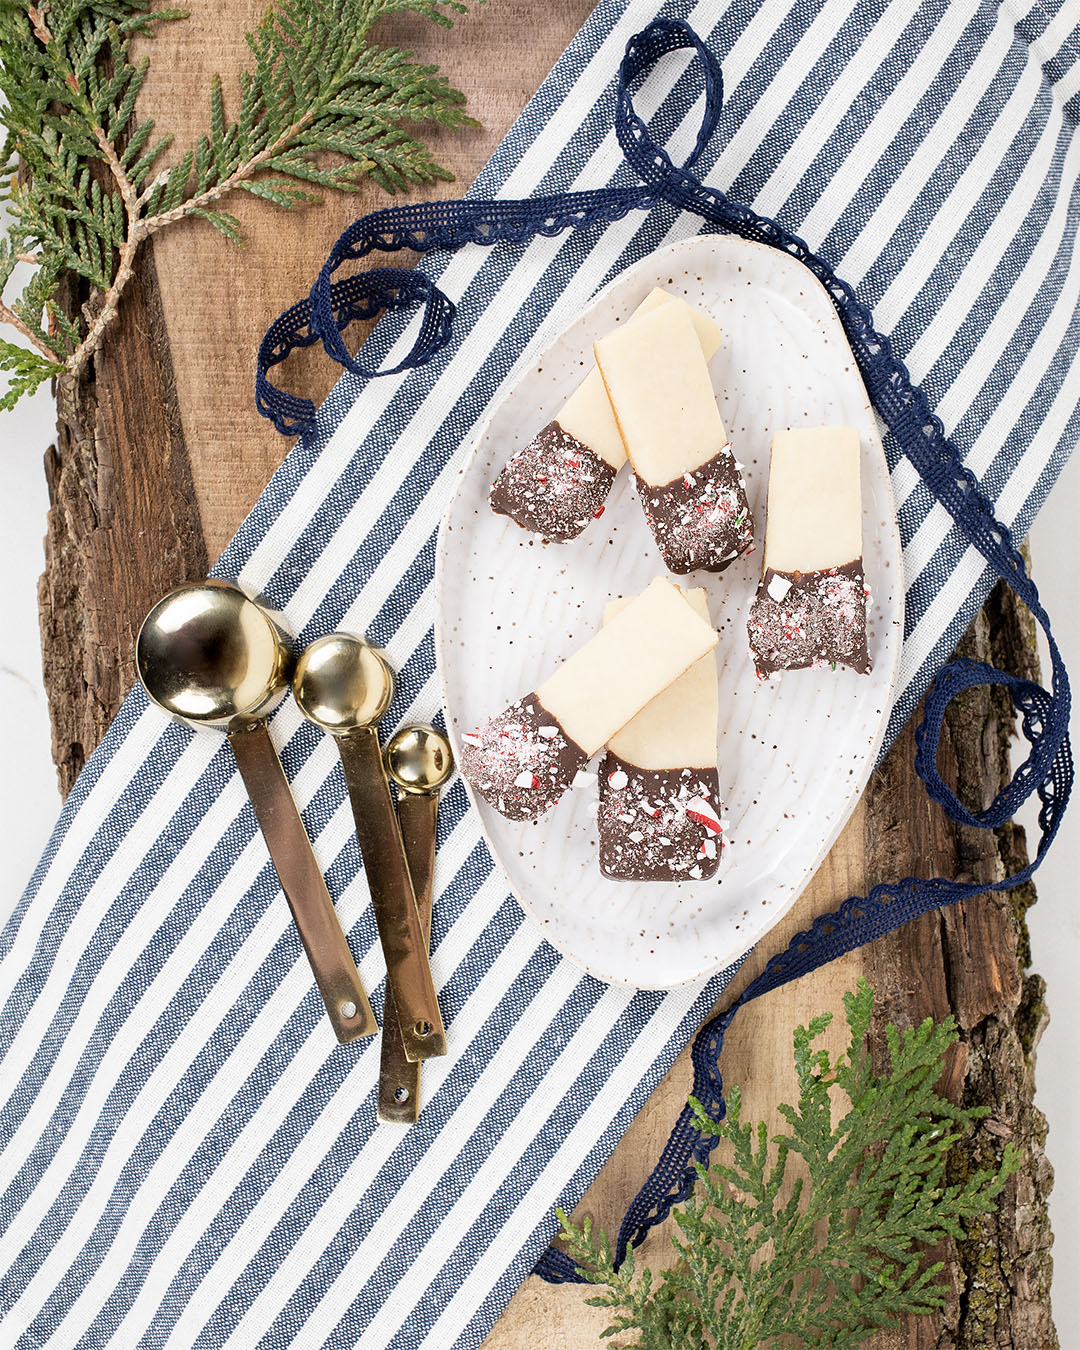 Another fun variation on classic shortbread to add to your cookie tray this holiday season. Here's how to make chocolate-dipped shortbread fingers!